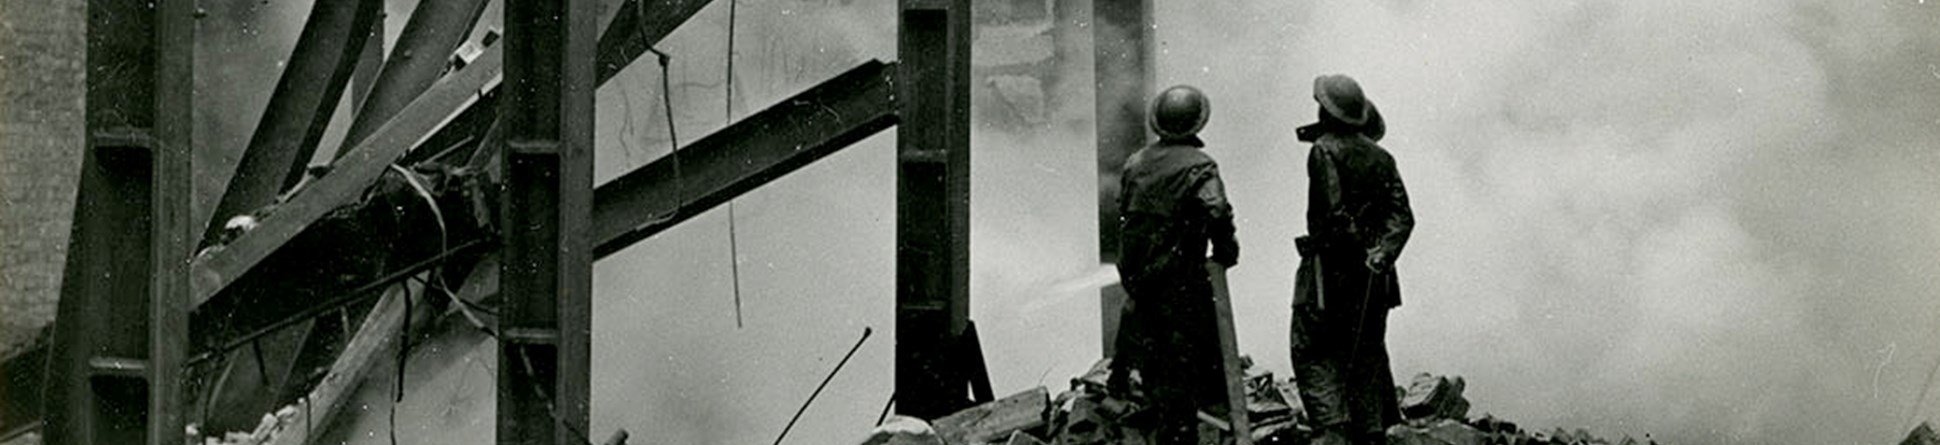 Two fire fighters stand on a pile of rubble next to steel girders looking up at a bomb damaged building partially shrouded by smoke.